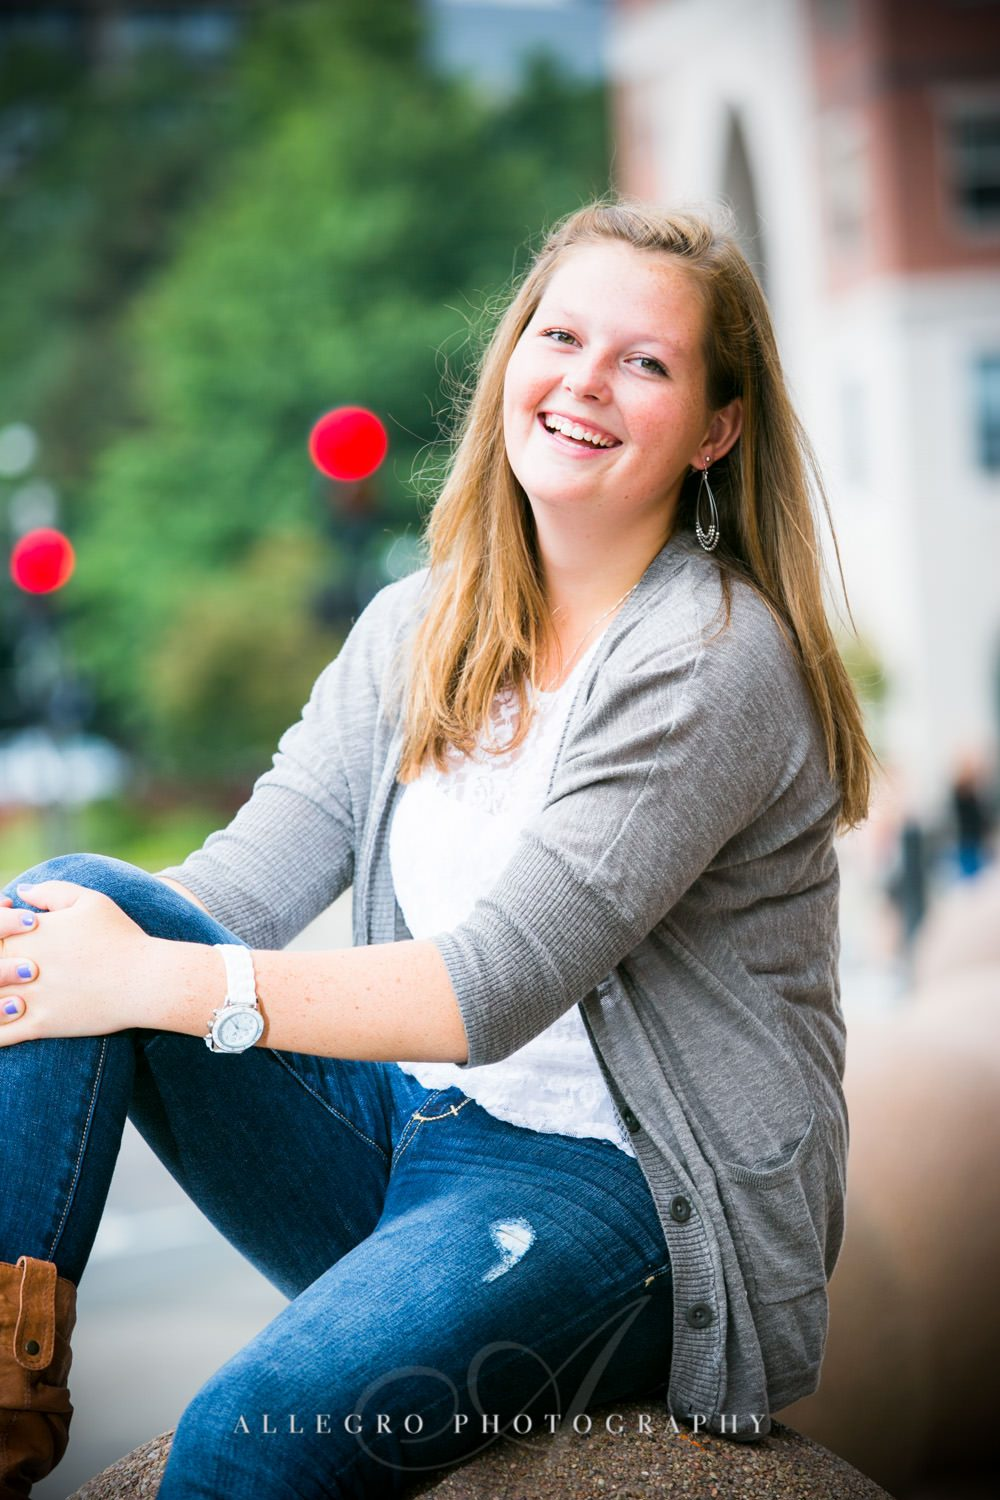 Wellesley Senior Photos Allegro Photography